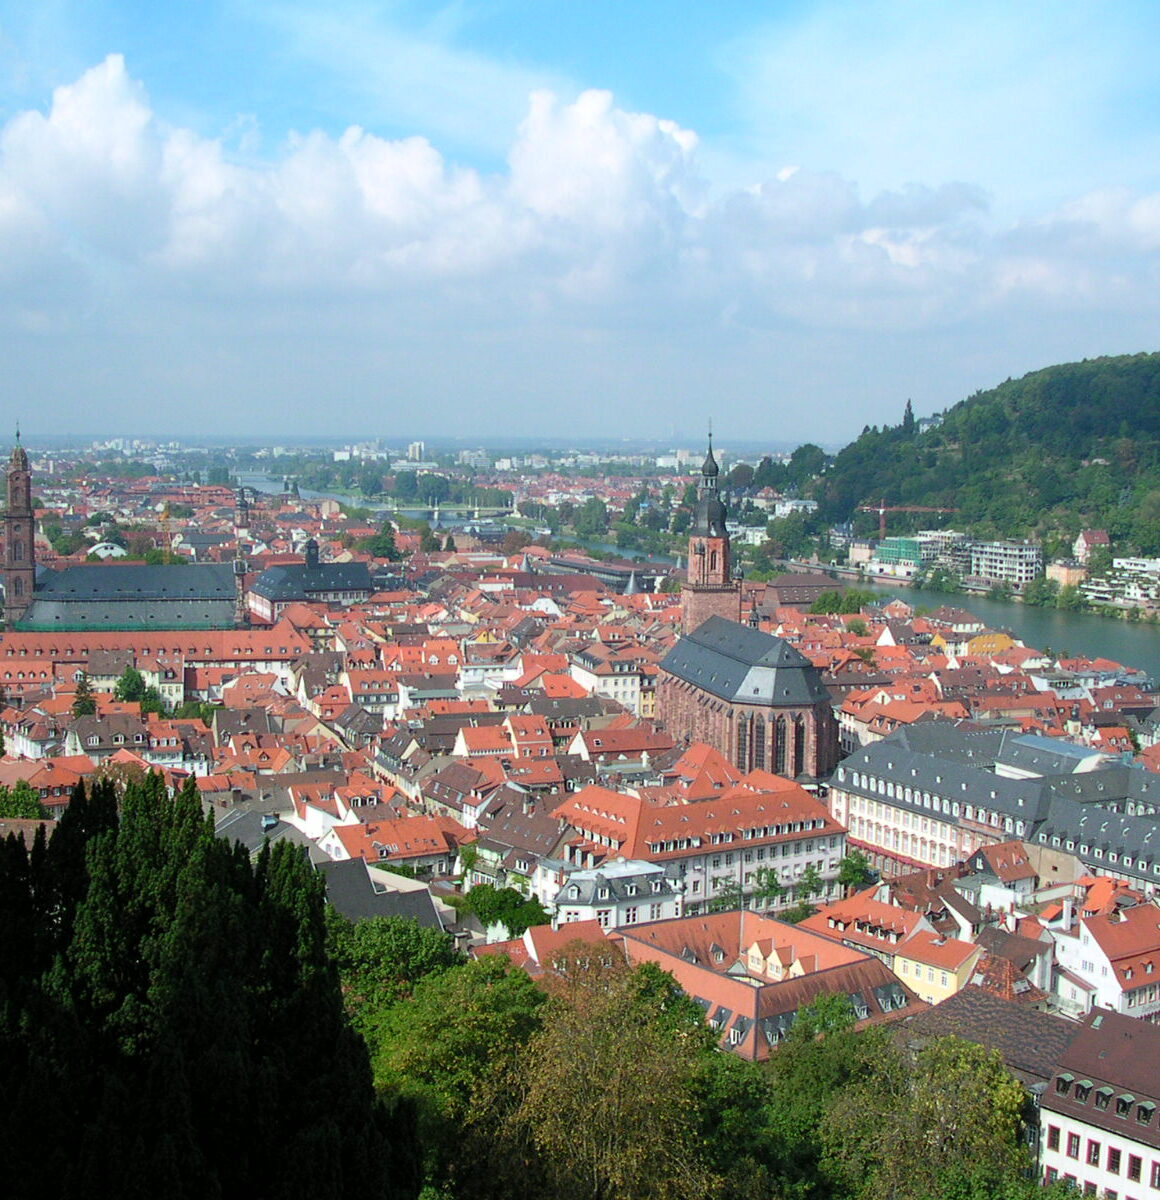 View of Heidelberg Germany from the hilltop